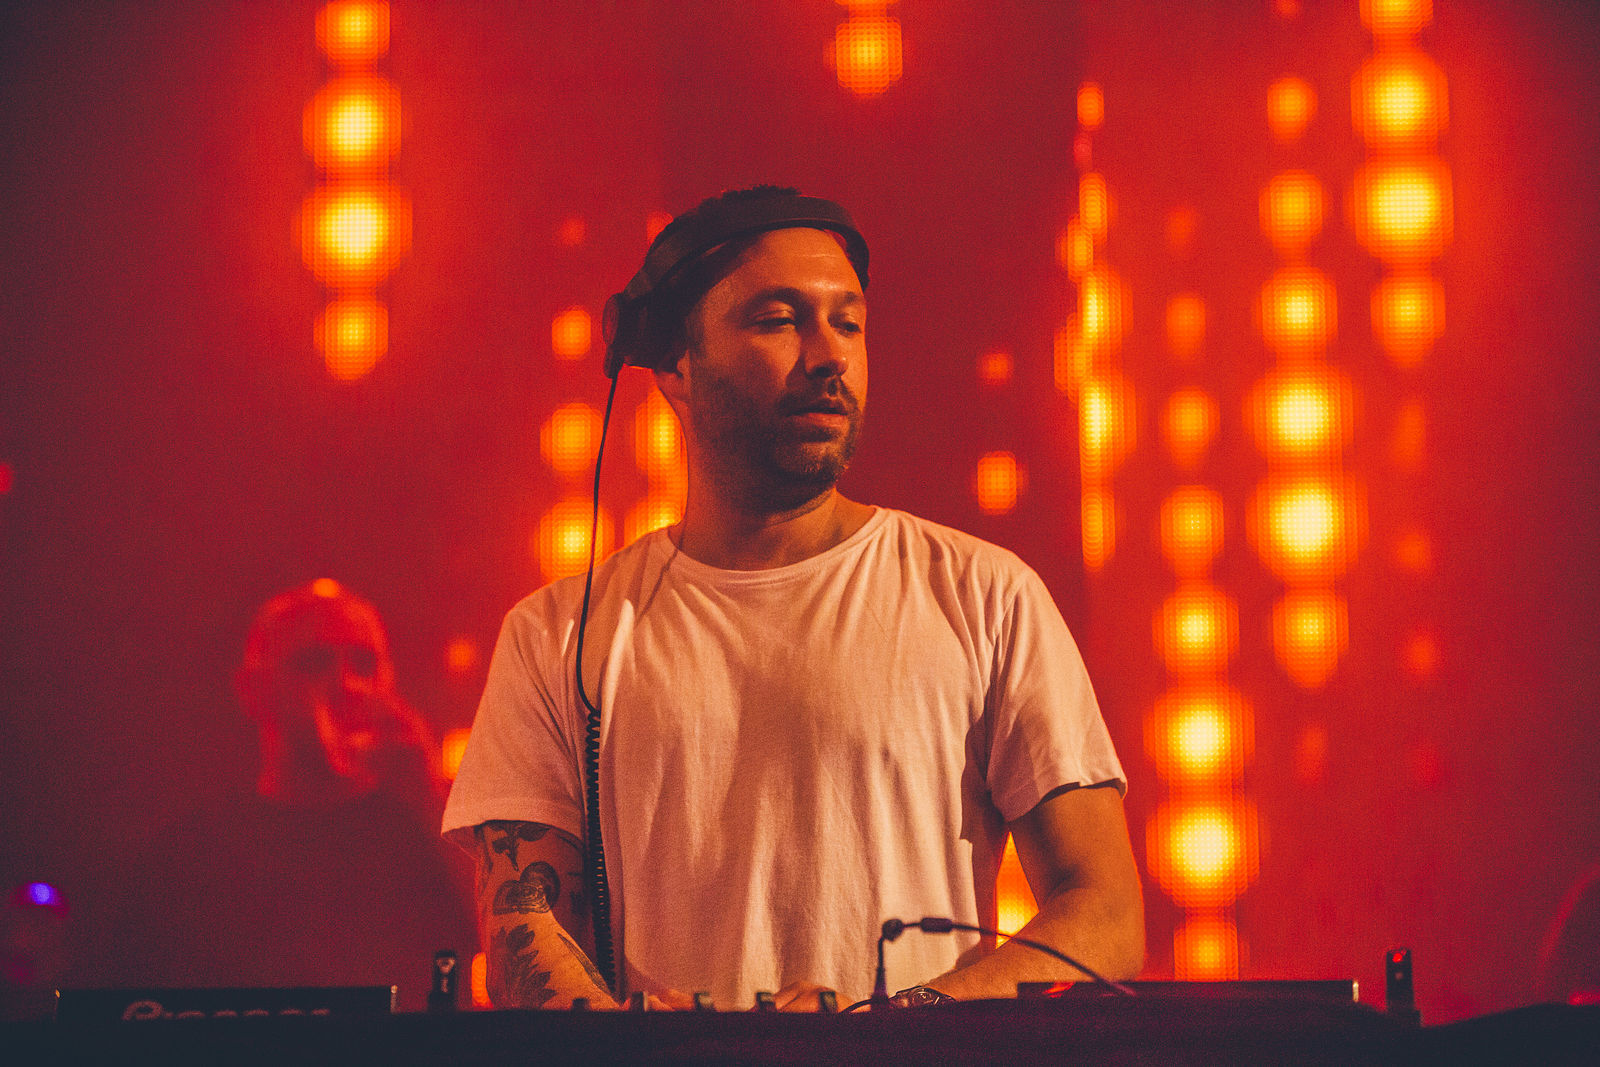 Nic Fanciulli estrena 'My Heart', su álbum debut